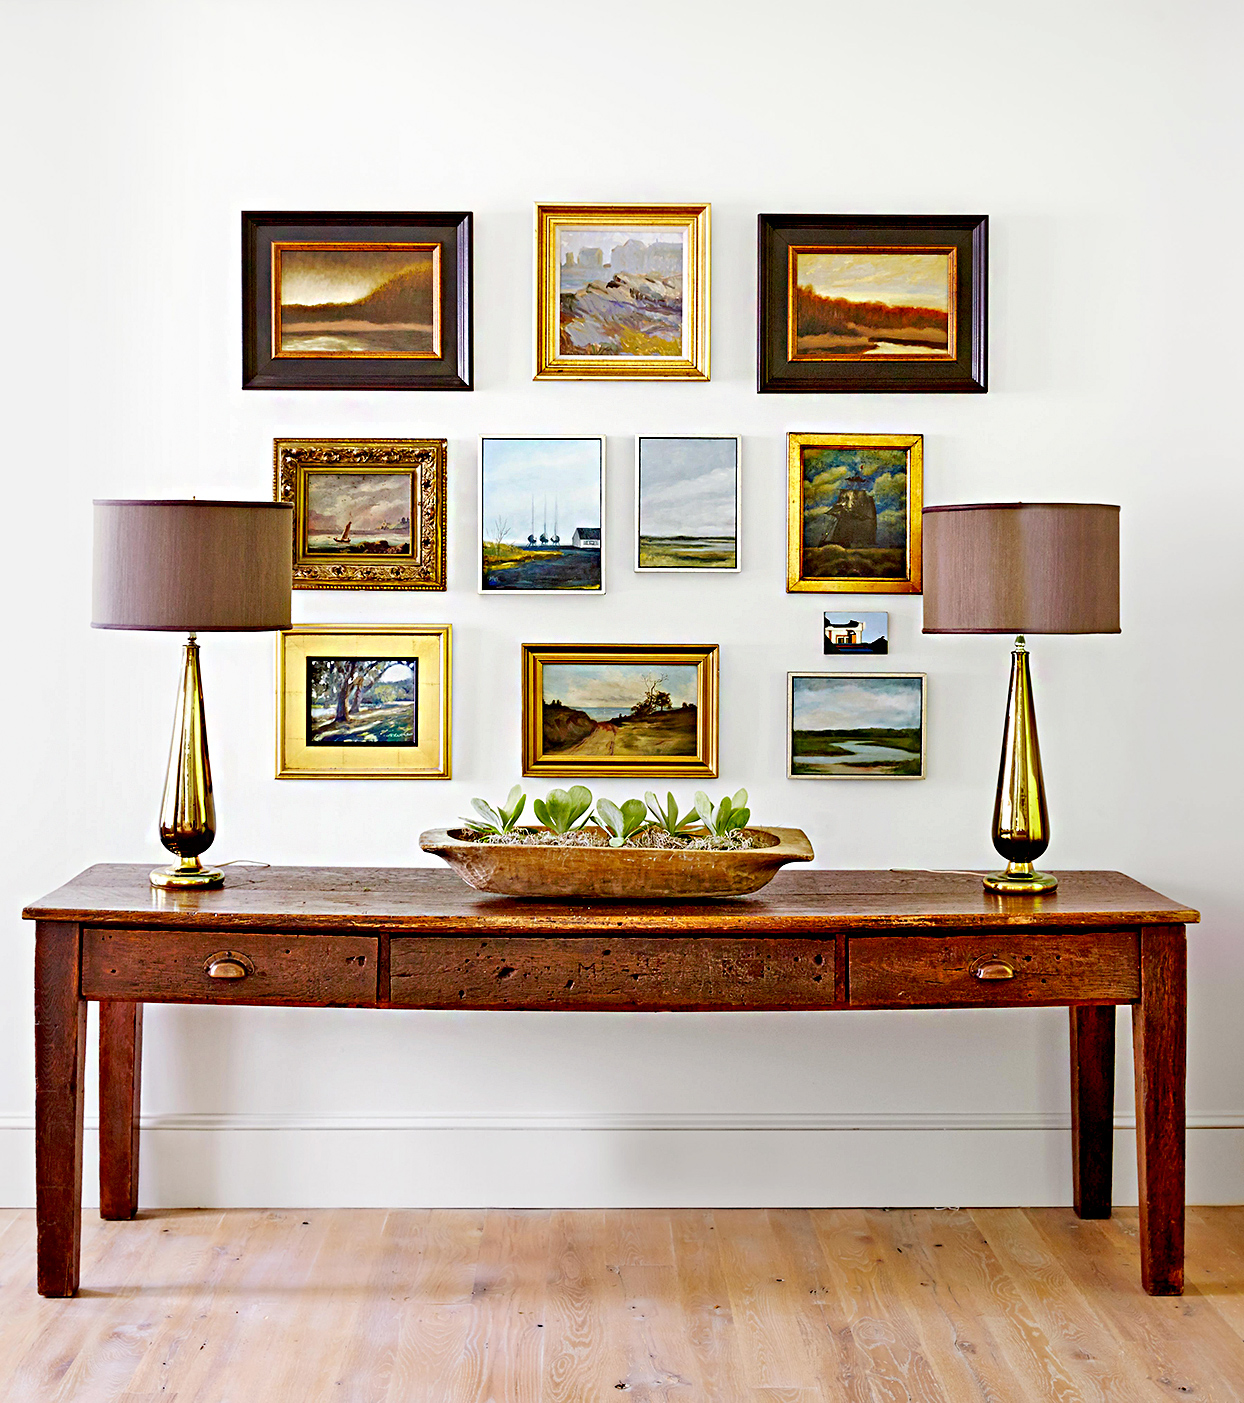 Table with lamps and multiple framed landscapes